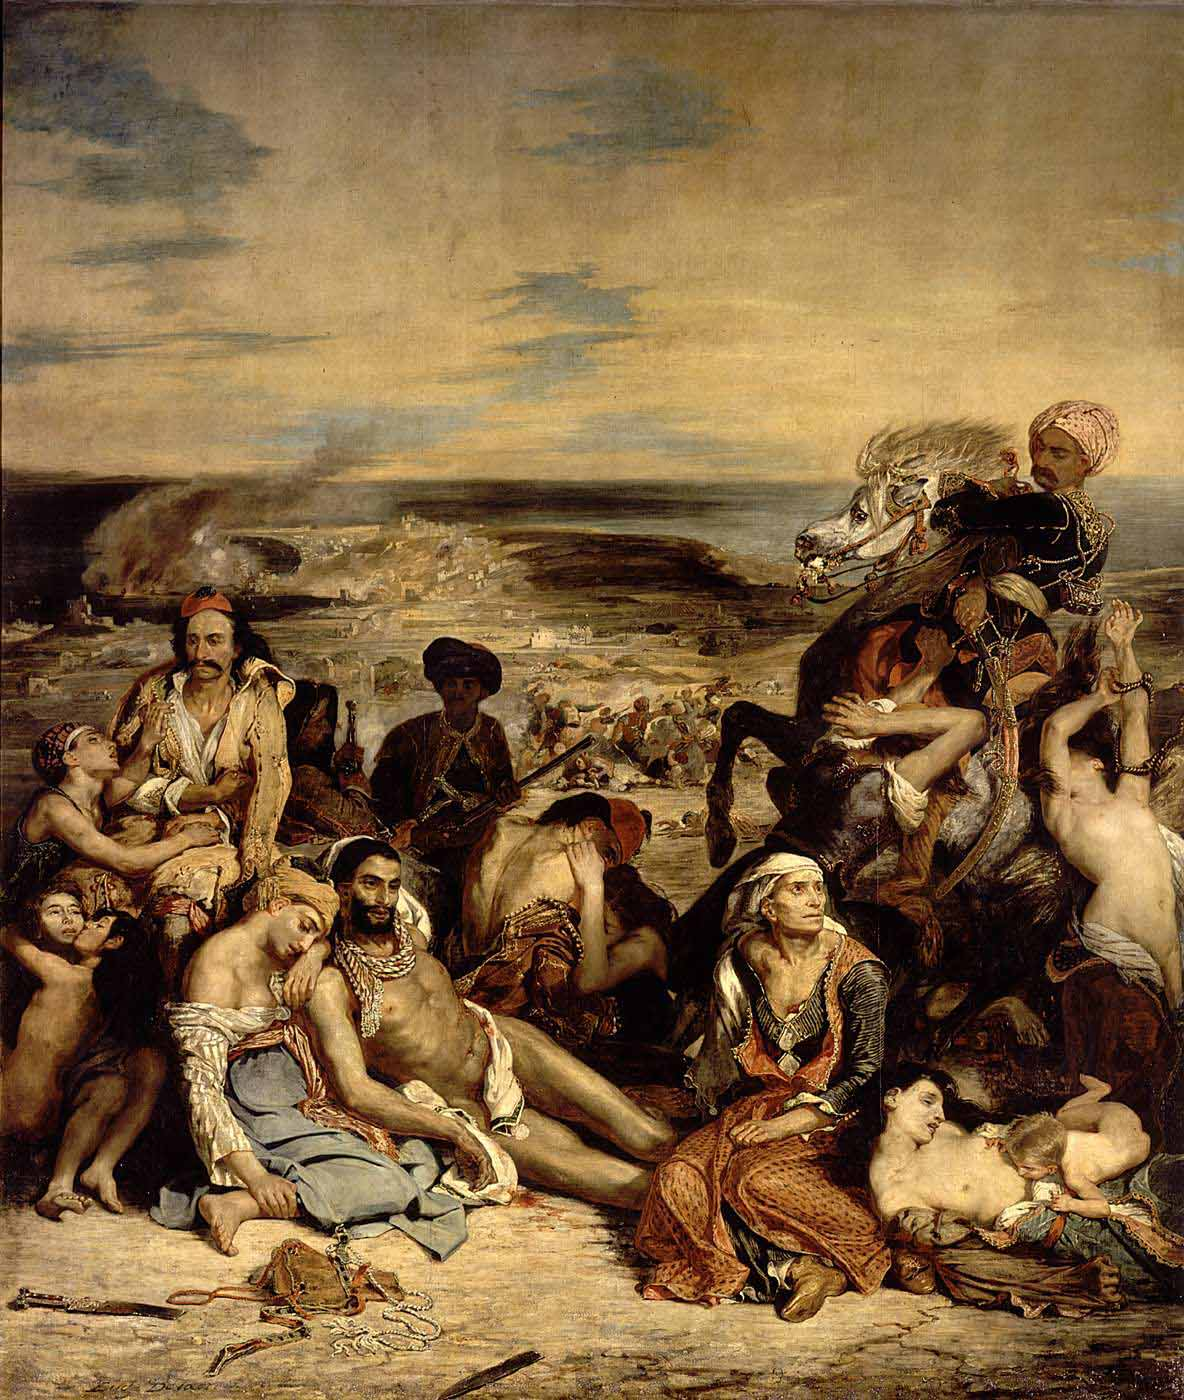 eugene delacroix's the massacre at chios 15082018  watch video  delacroix, scene of the massacre at chios delacroix,  woman: we're in louvre and we're looking at delacroix's the death of sardanapalus.